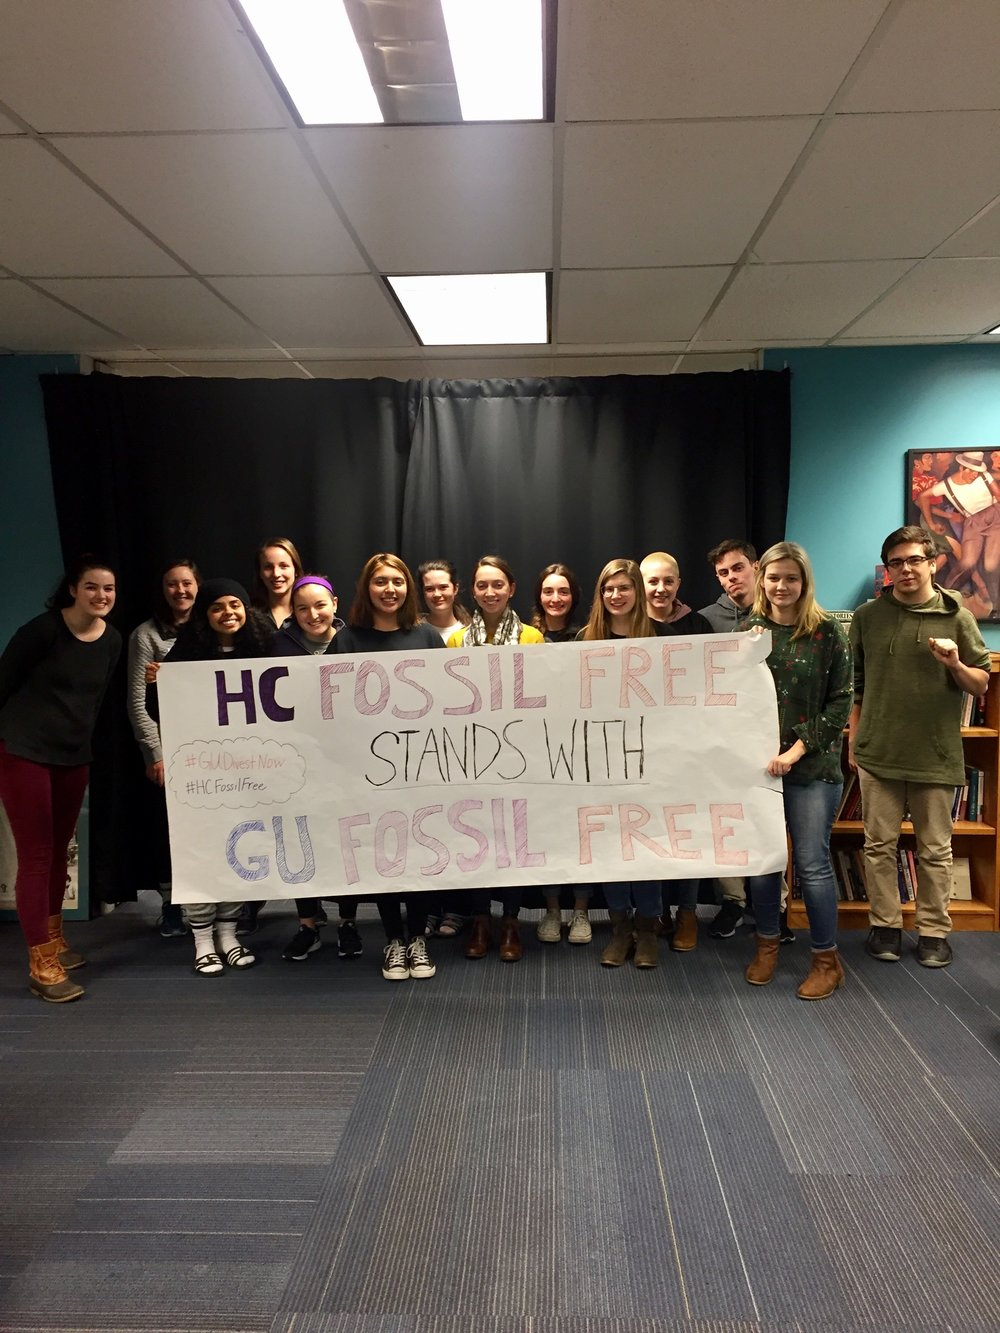 Members of HC Fossil Free, Holy Cross' divestment campaign, take a photo in support of an escalation taken by Georgetown's campaign, GU Fossil Free, this past fall. Jesuit education holds great potential for such cross-campus collaboration on climate justice initiatives.